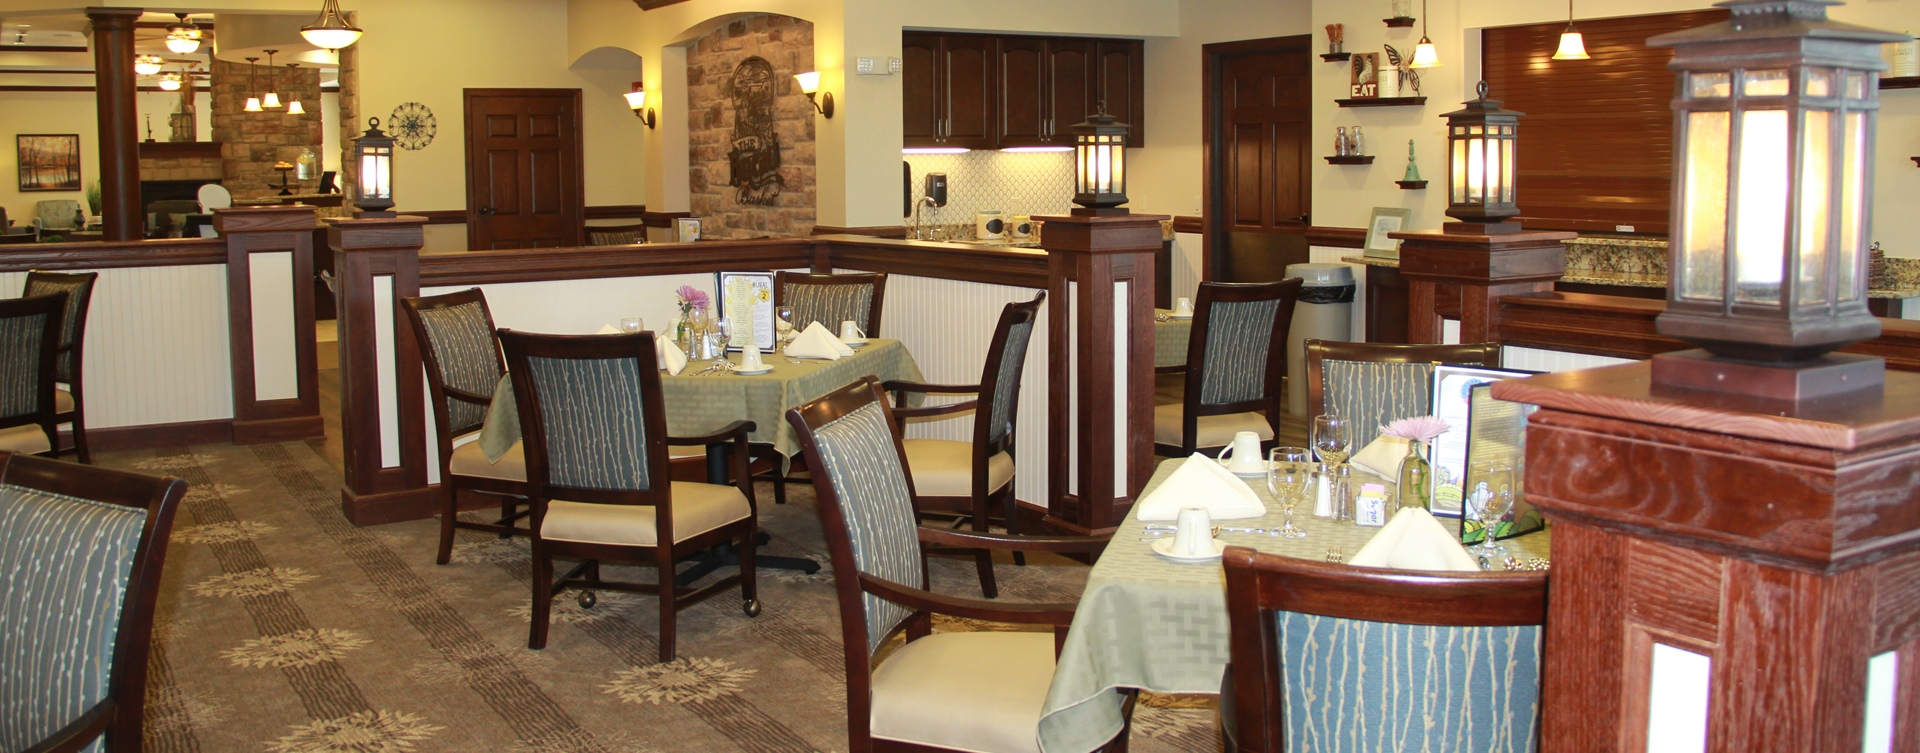 Enjoy homestyle food with made-from-scratch recipes in our dining room at Bickford of Chesterfield